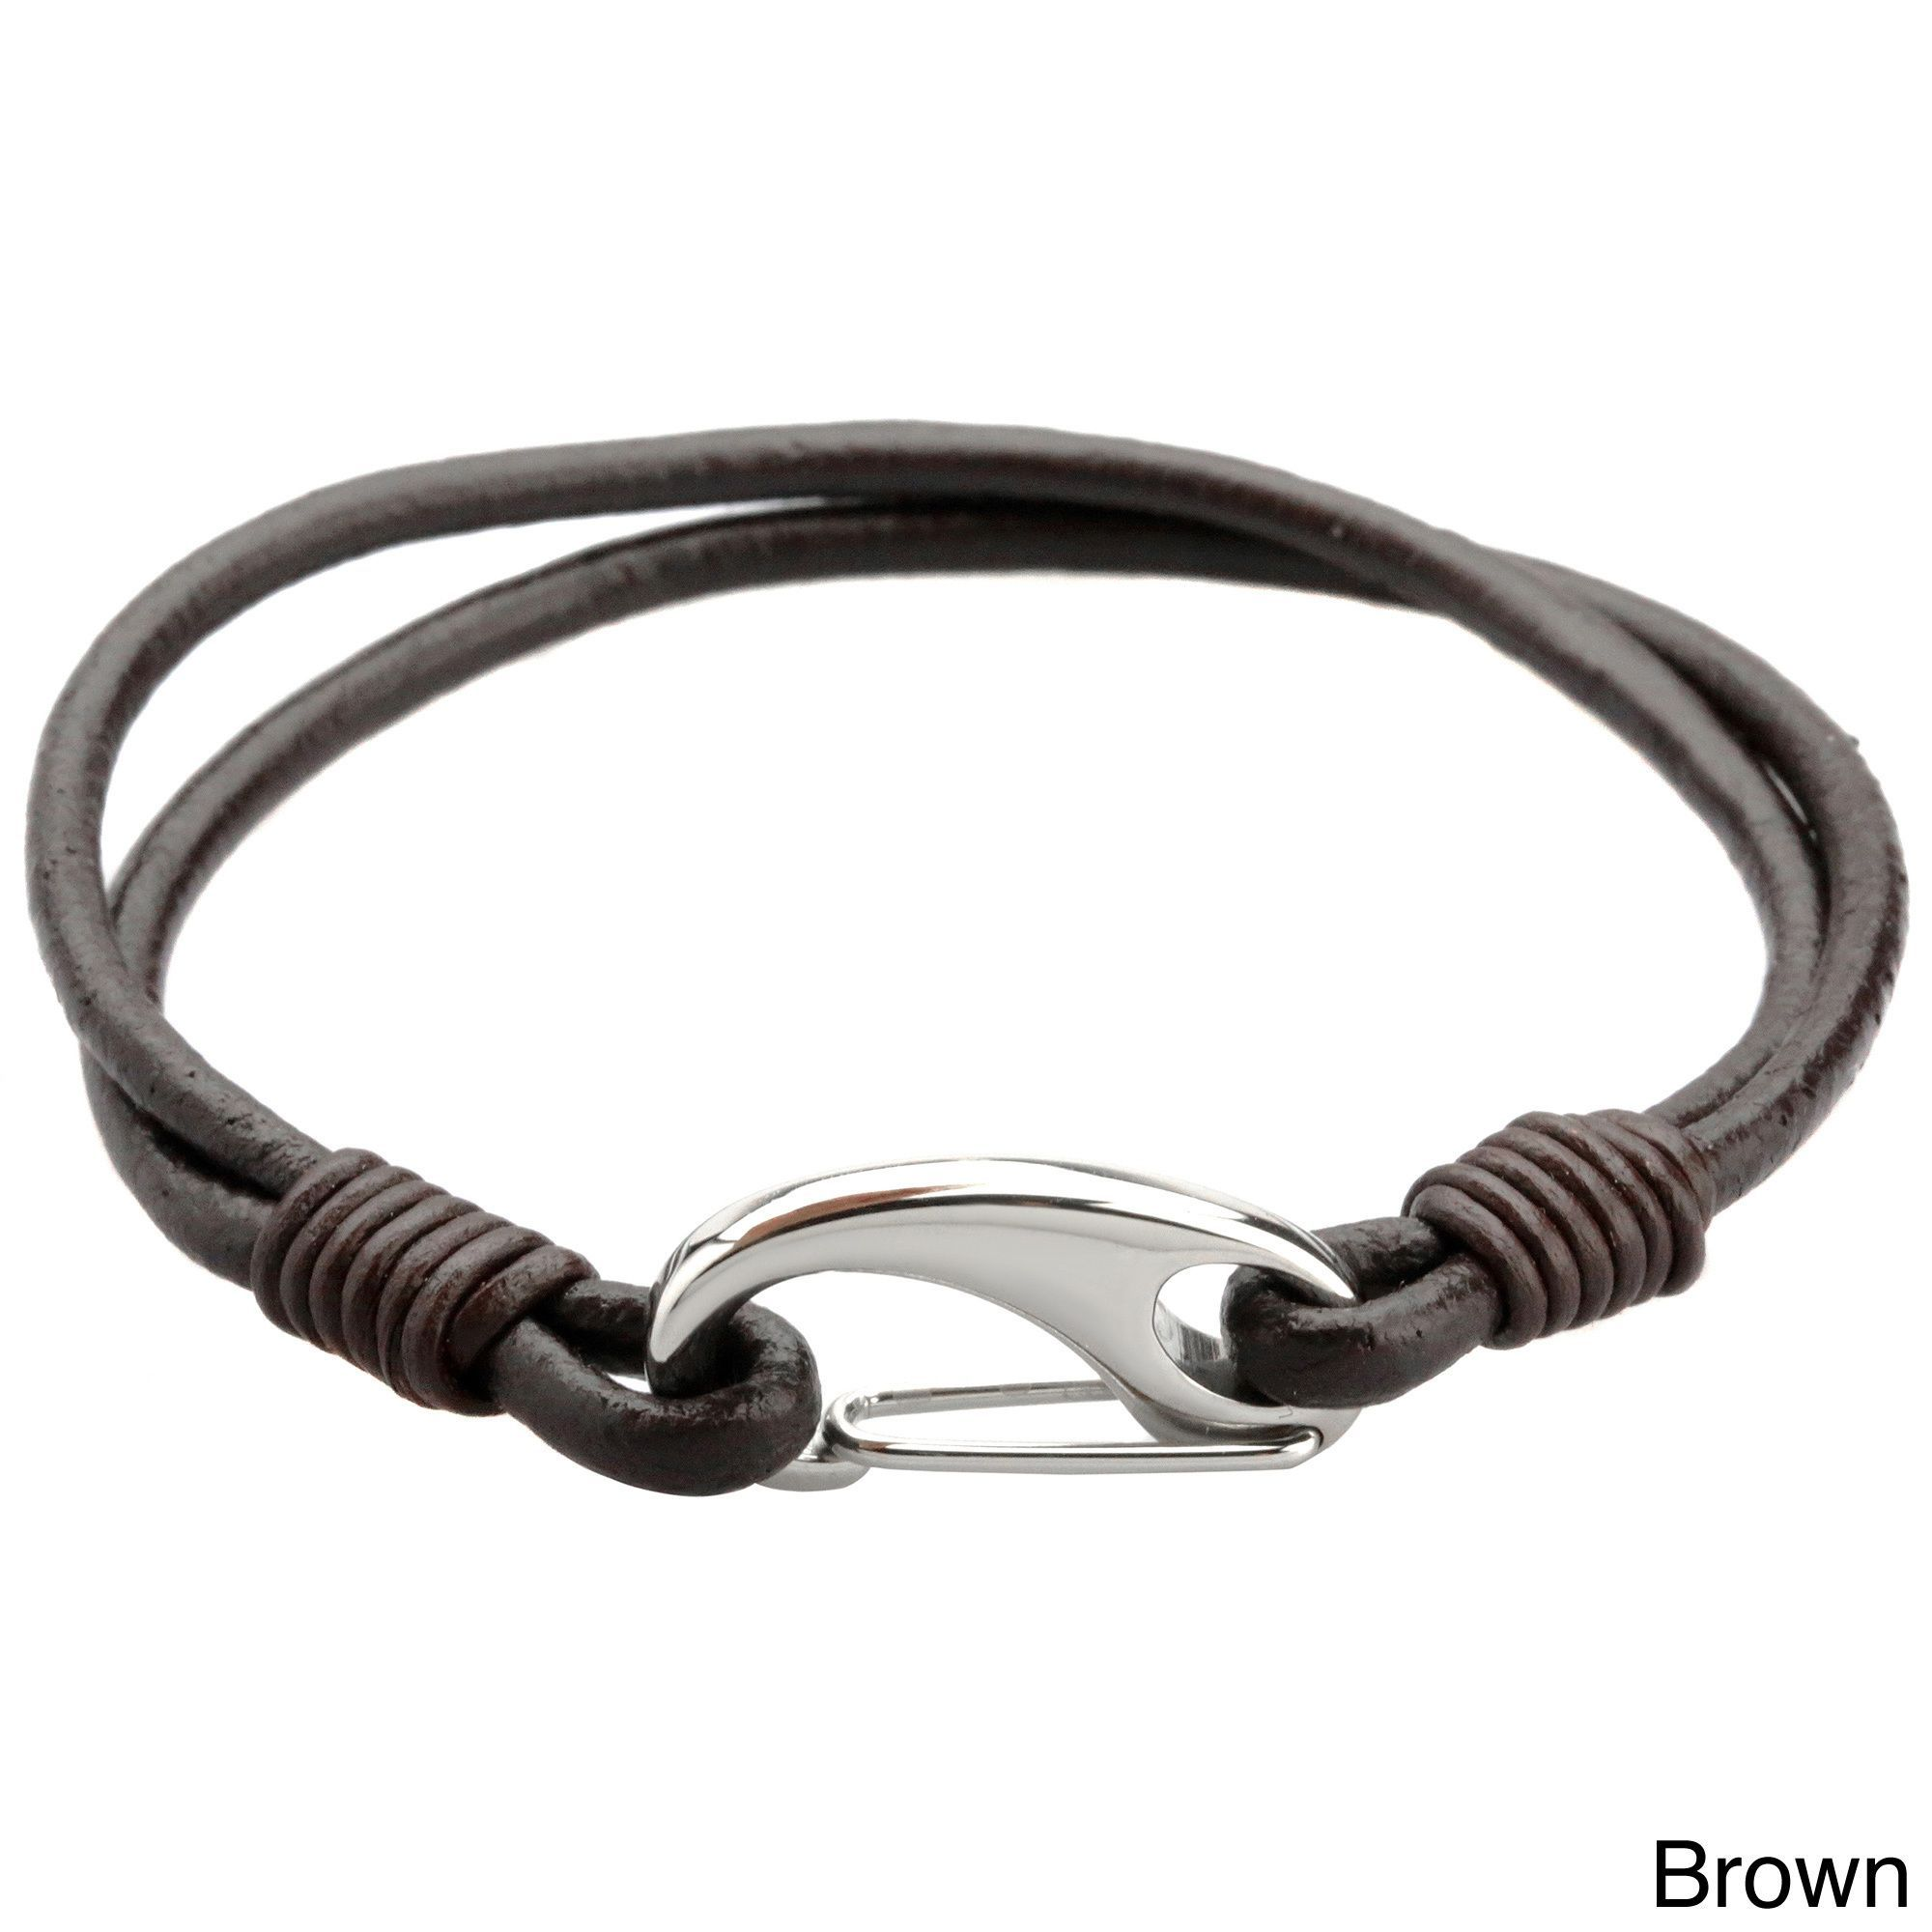 This Fashionforward Bracelet For Men Showcases A Stainless Steel Lobster  Claw Clasp On A